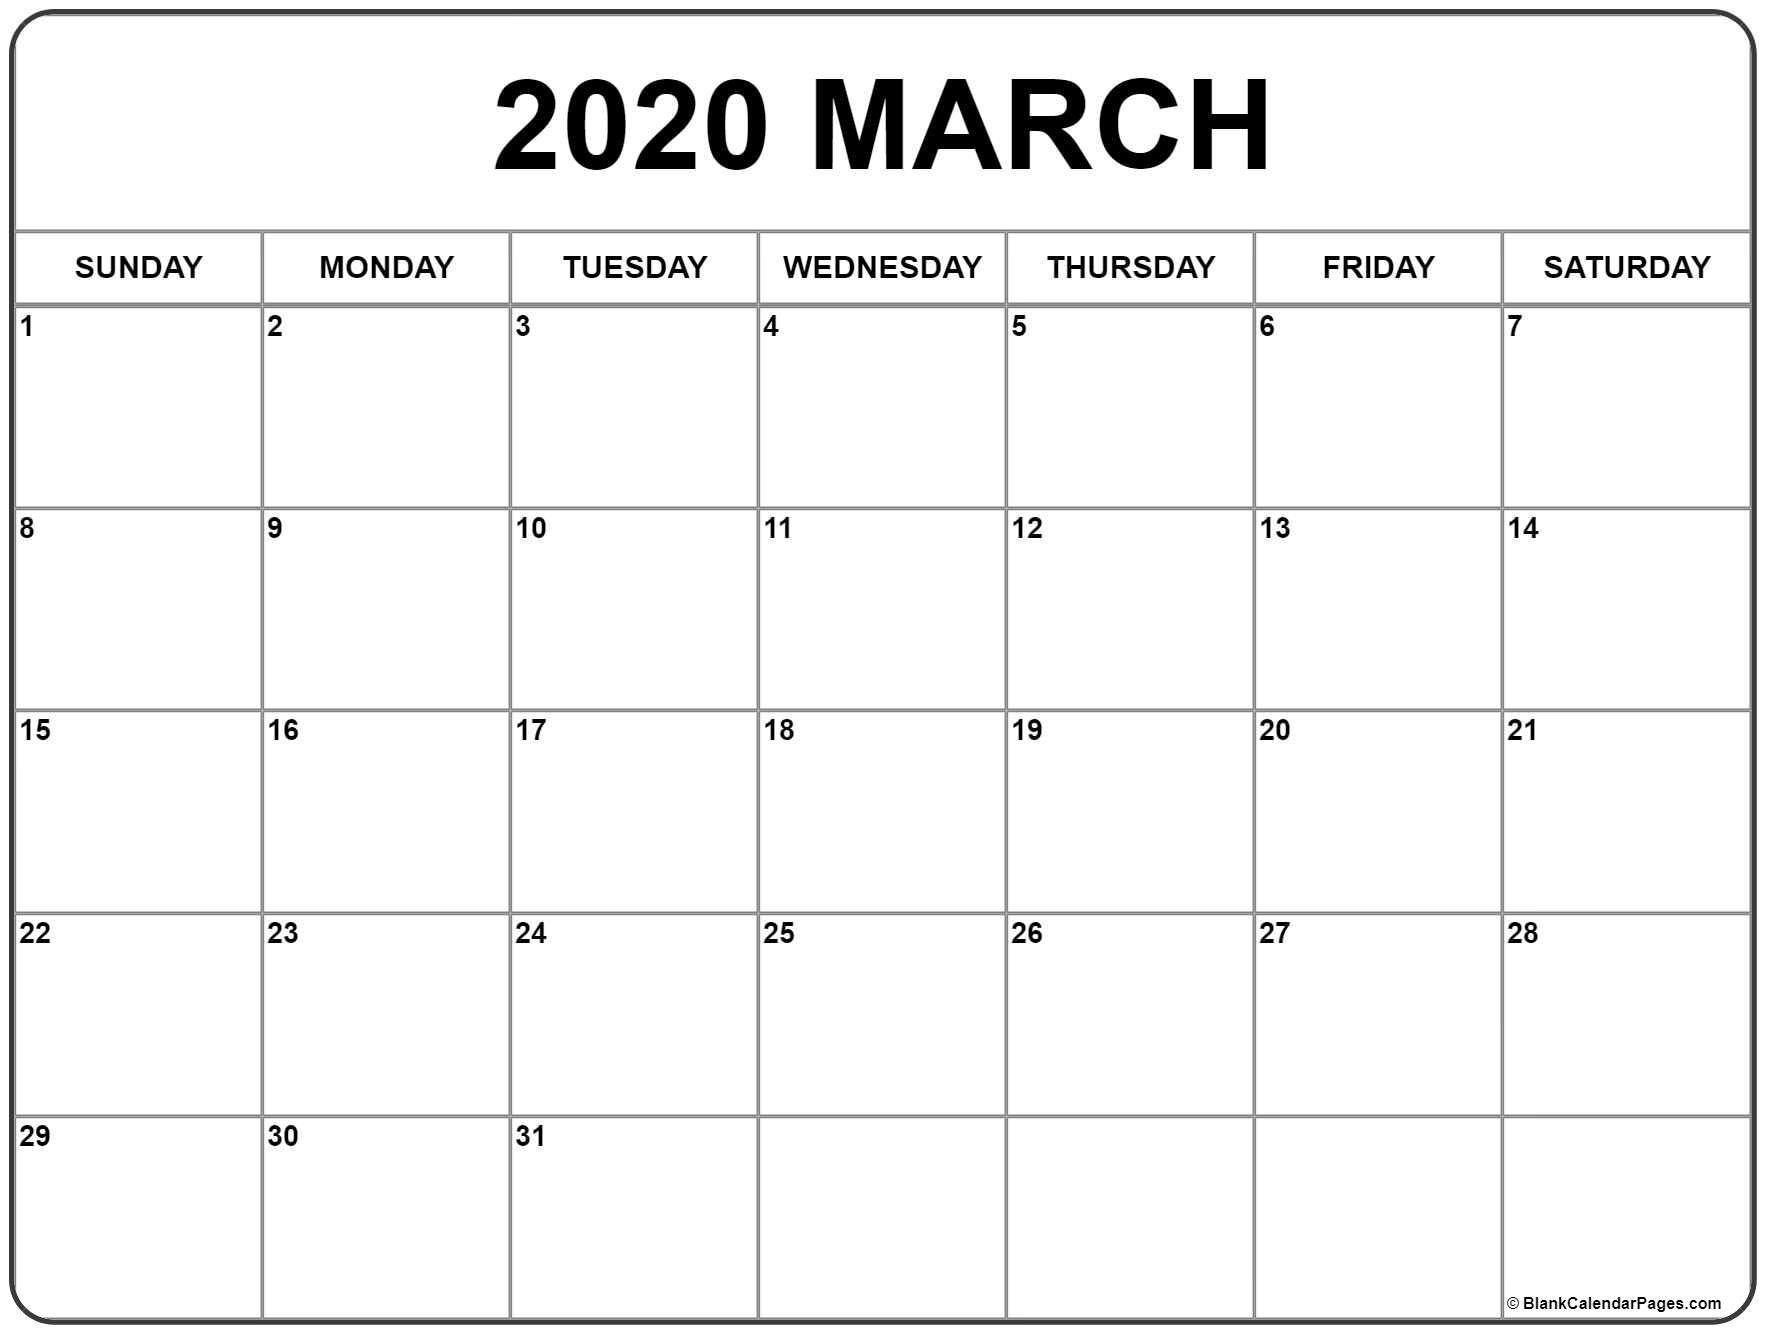 March 2020 Calendar | Free Printable Monthly Calendars intended for Free Printable 2020 Calendar With Space To Write